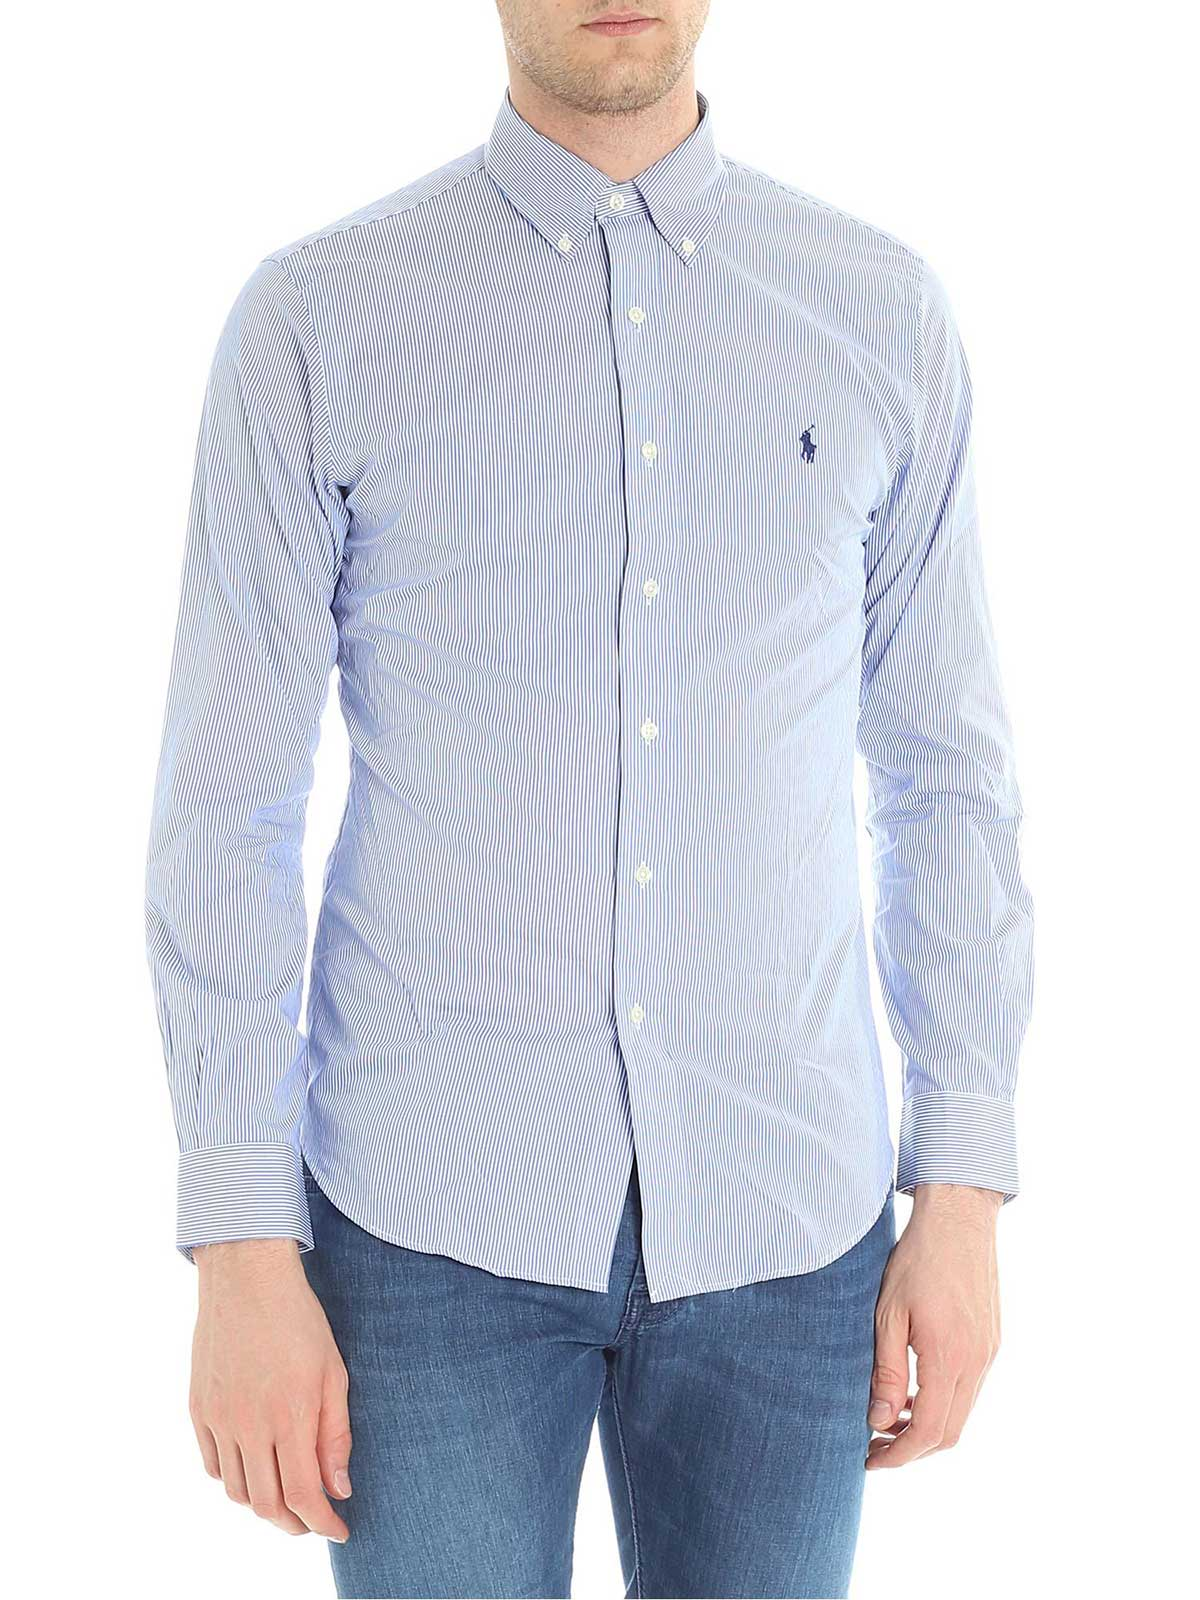 promo code b2871 07273 POLO RALPH LAUREN Camicia Uomo Slim Fit a Righe